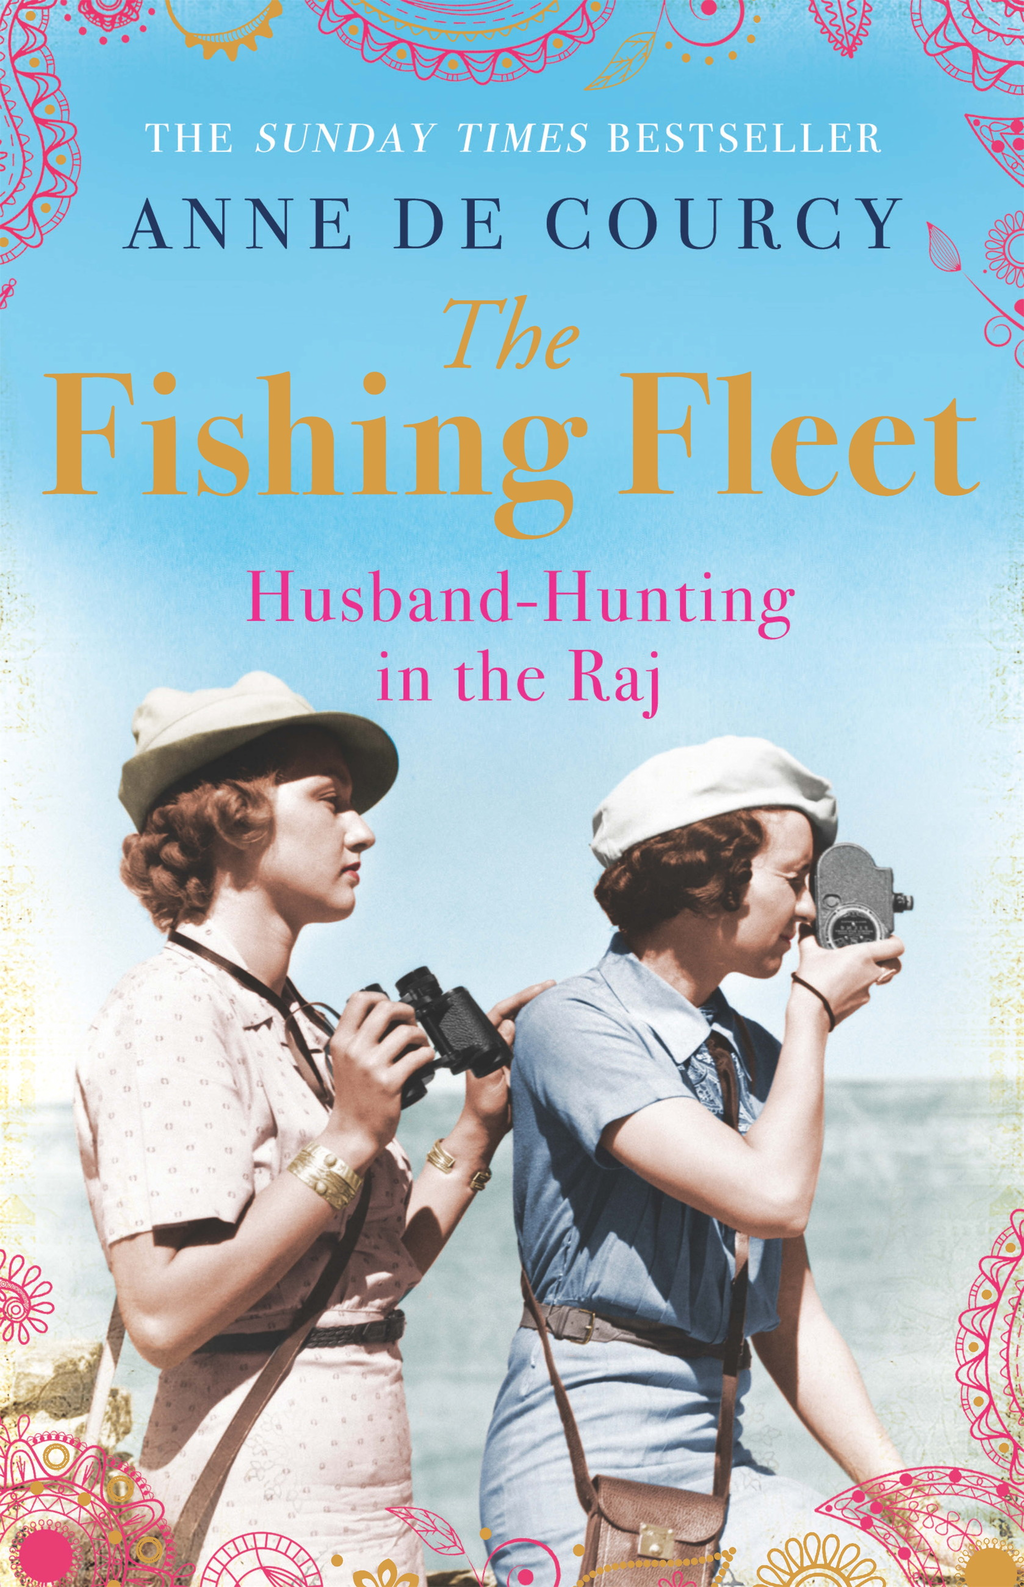 The Fishing Fleet Husband-Hunting in the Raj